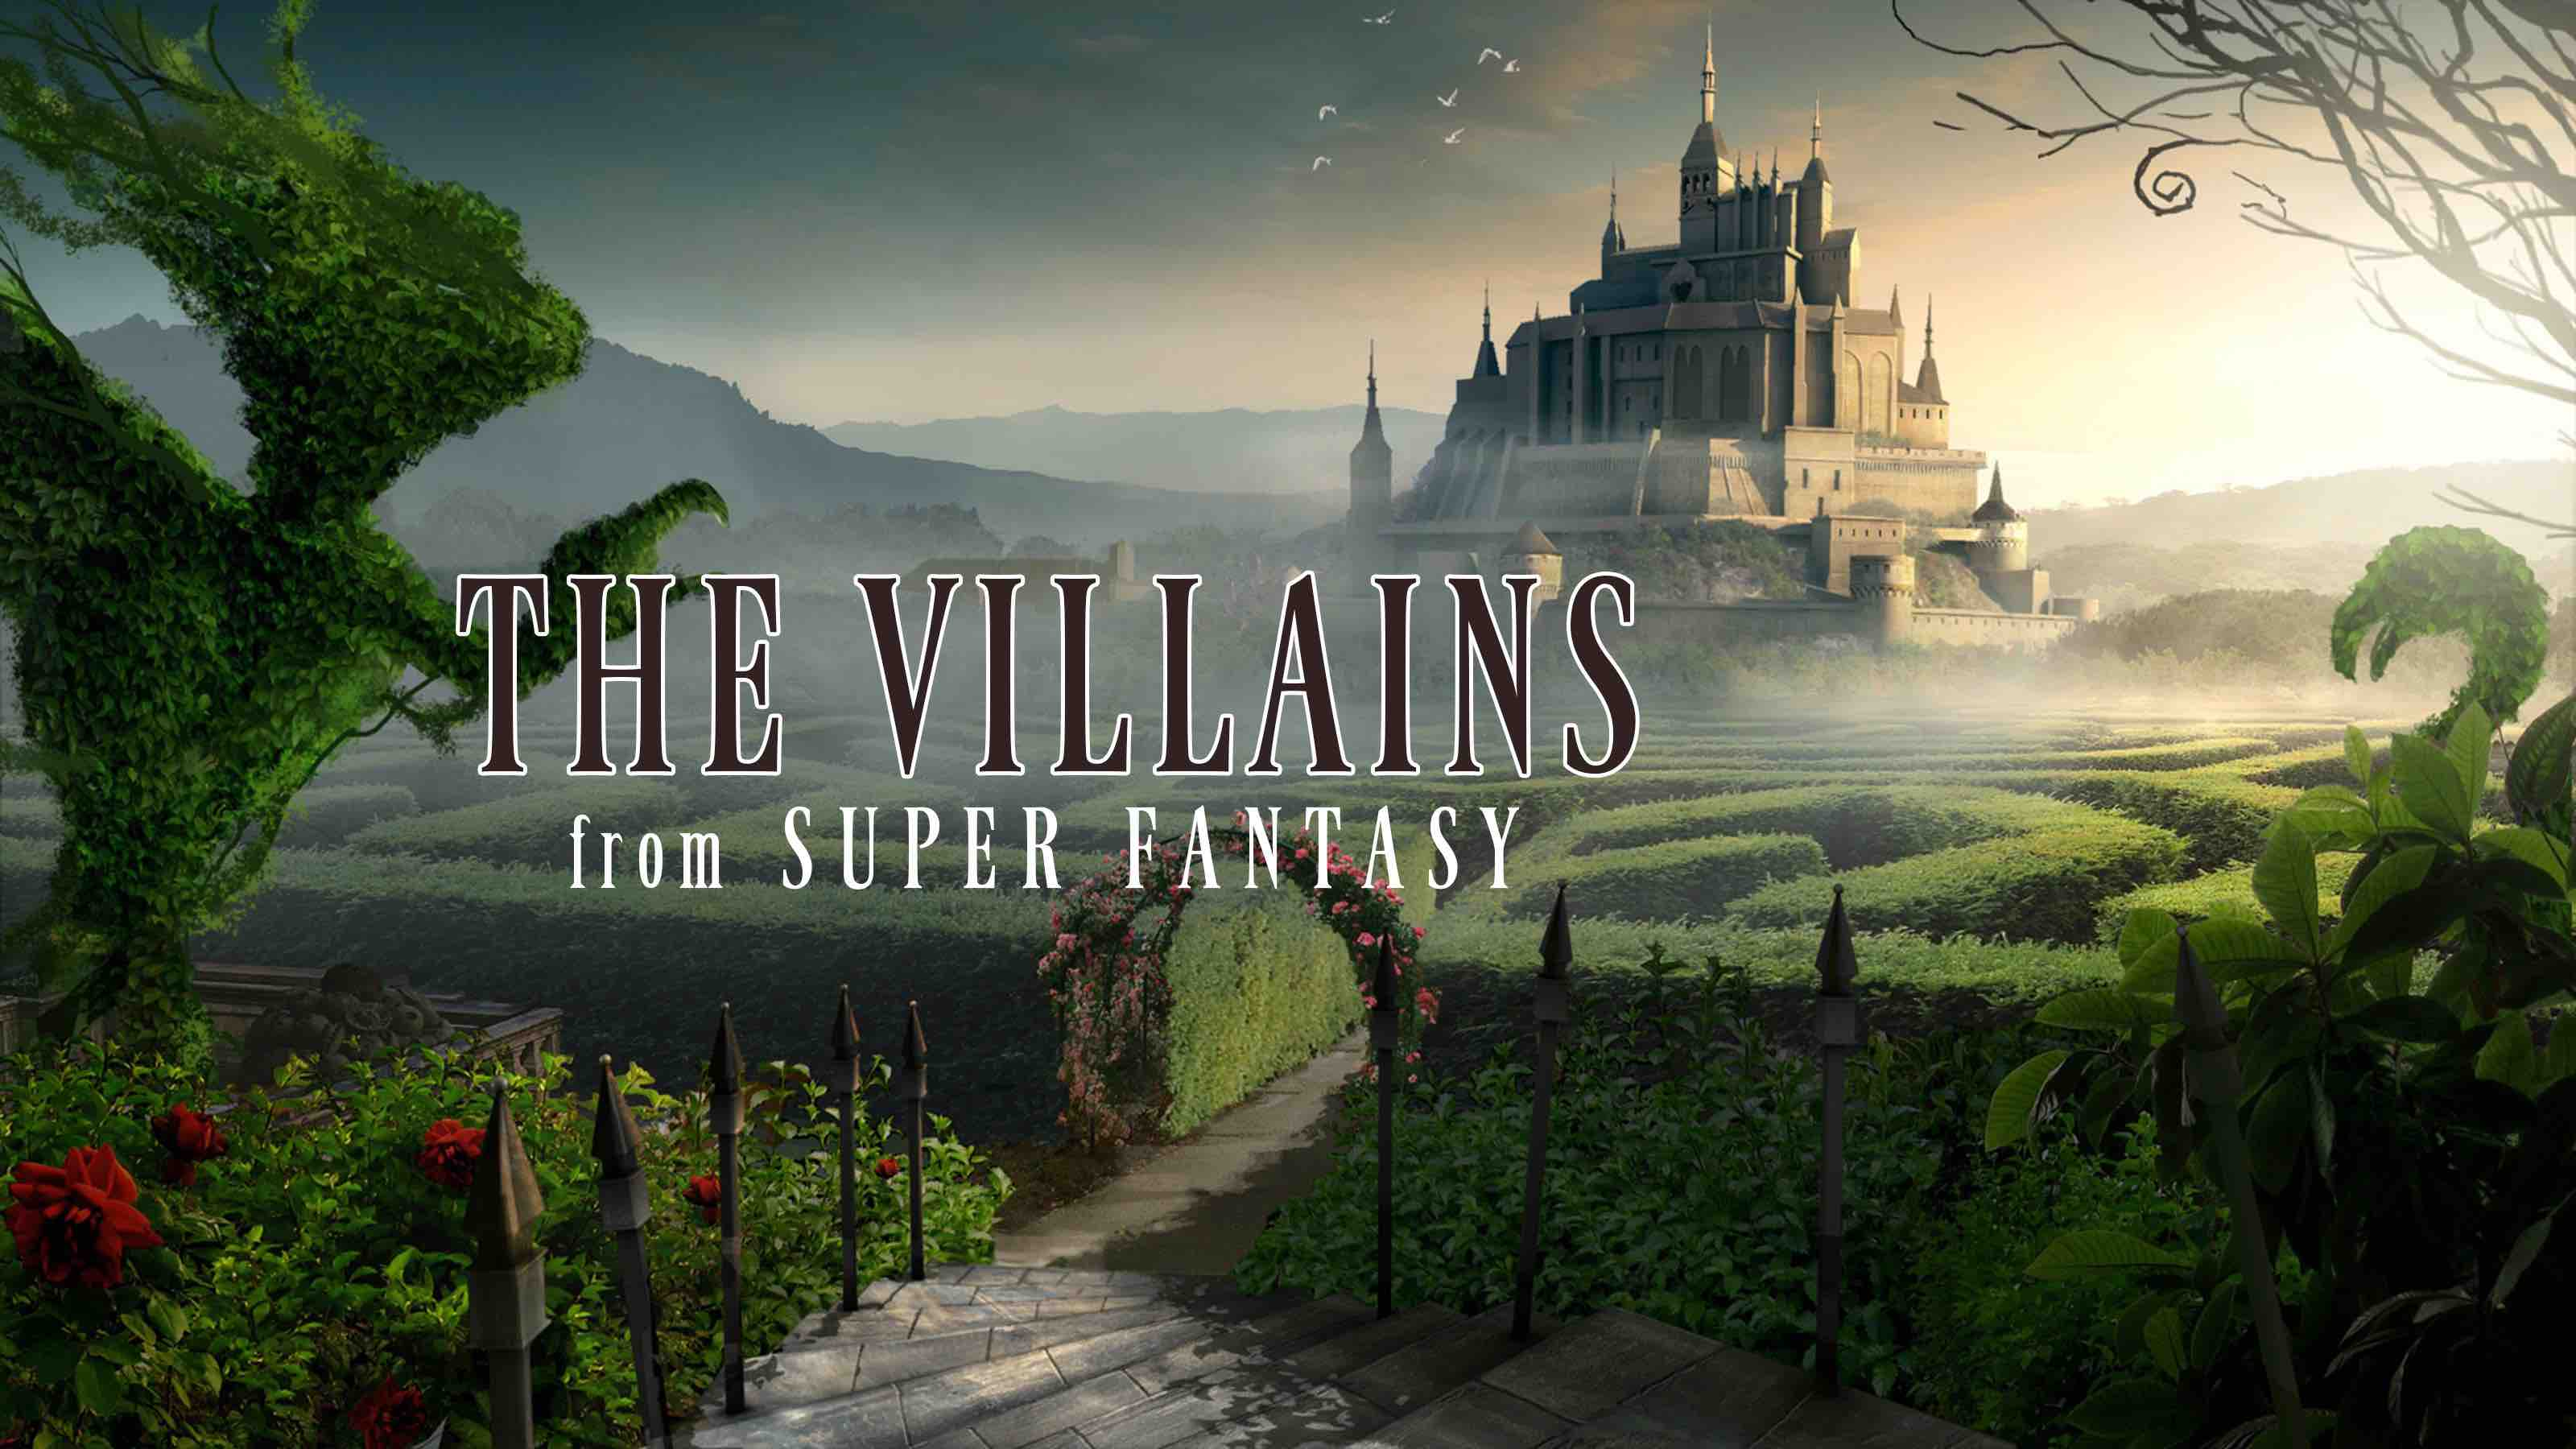 THE VILLAINS from SUPER FANTASY劇場公演